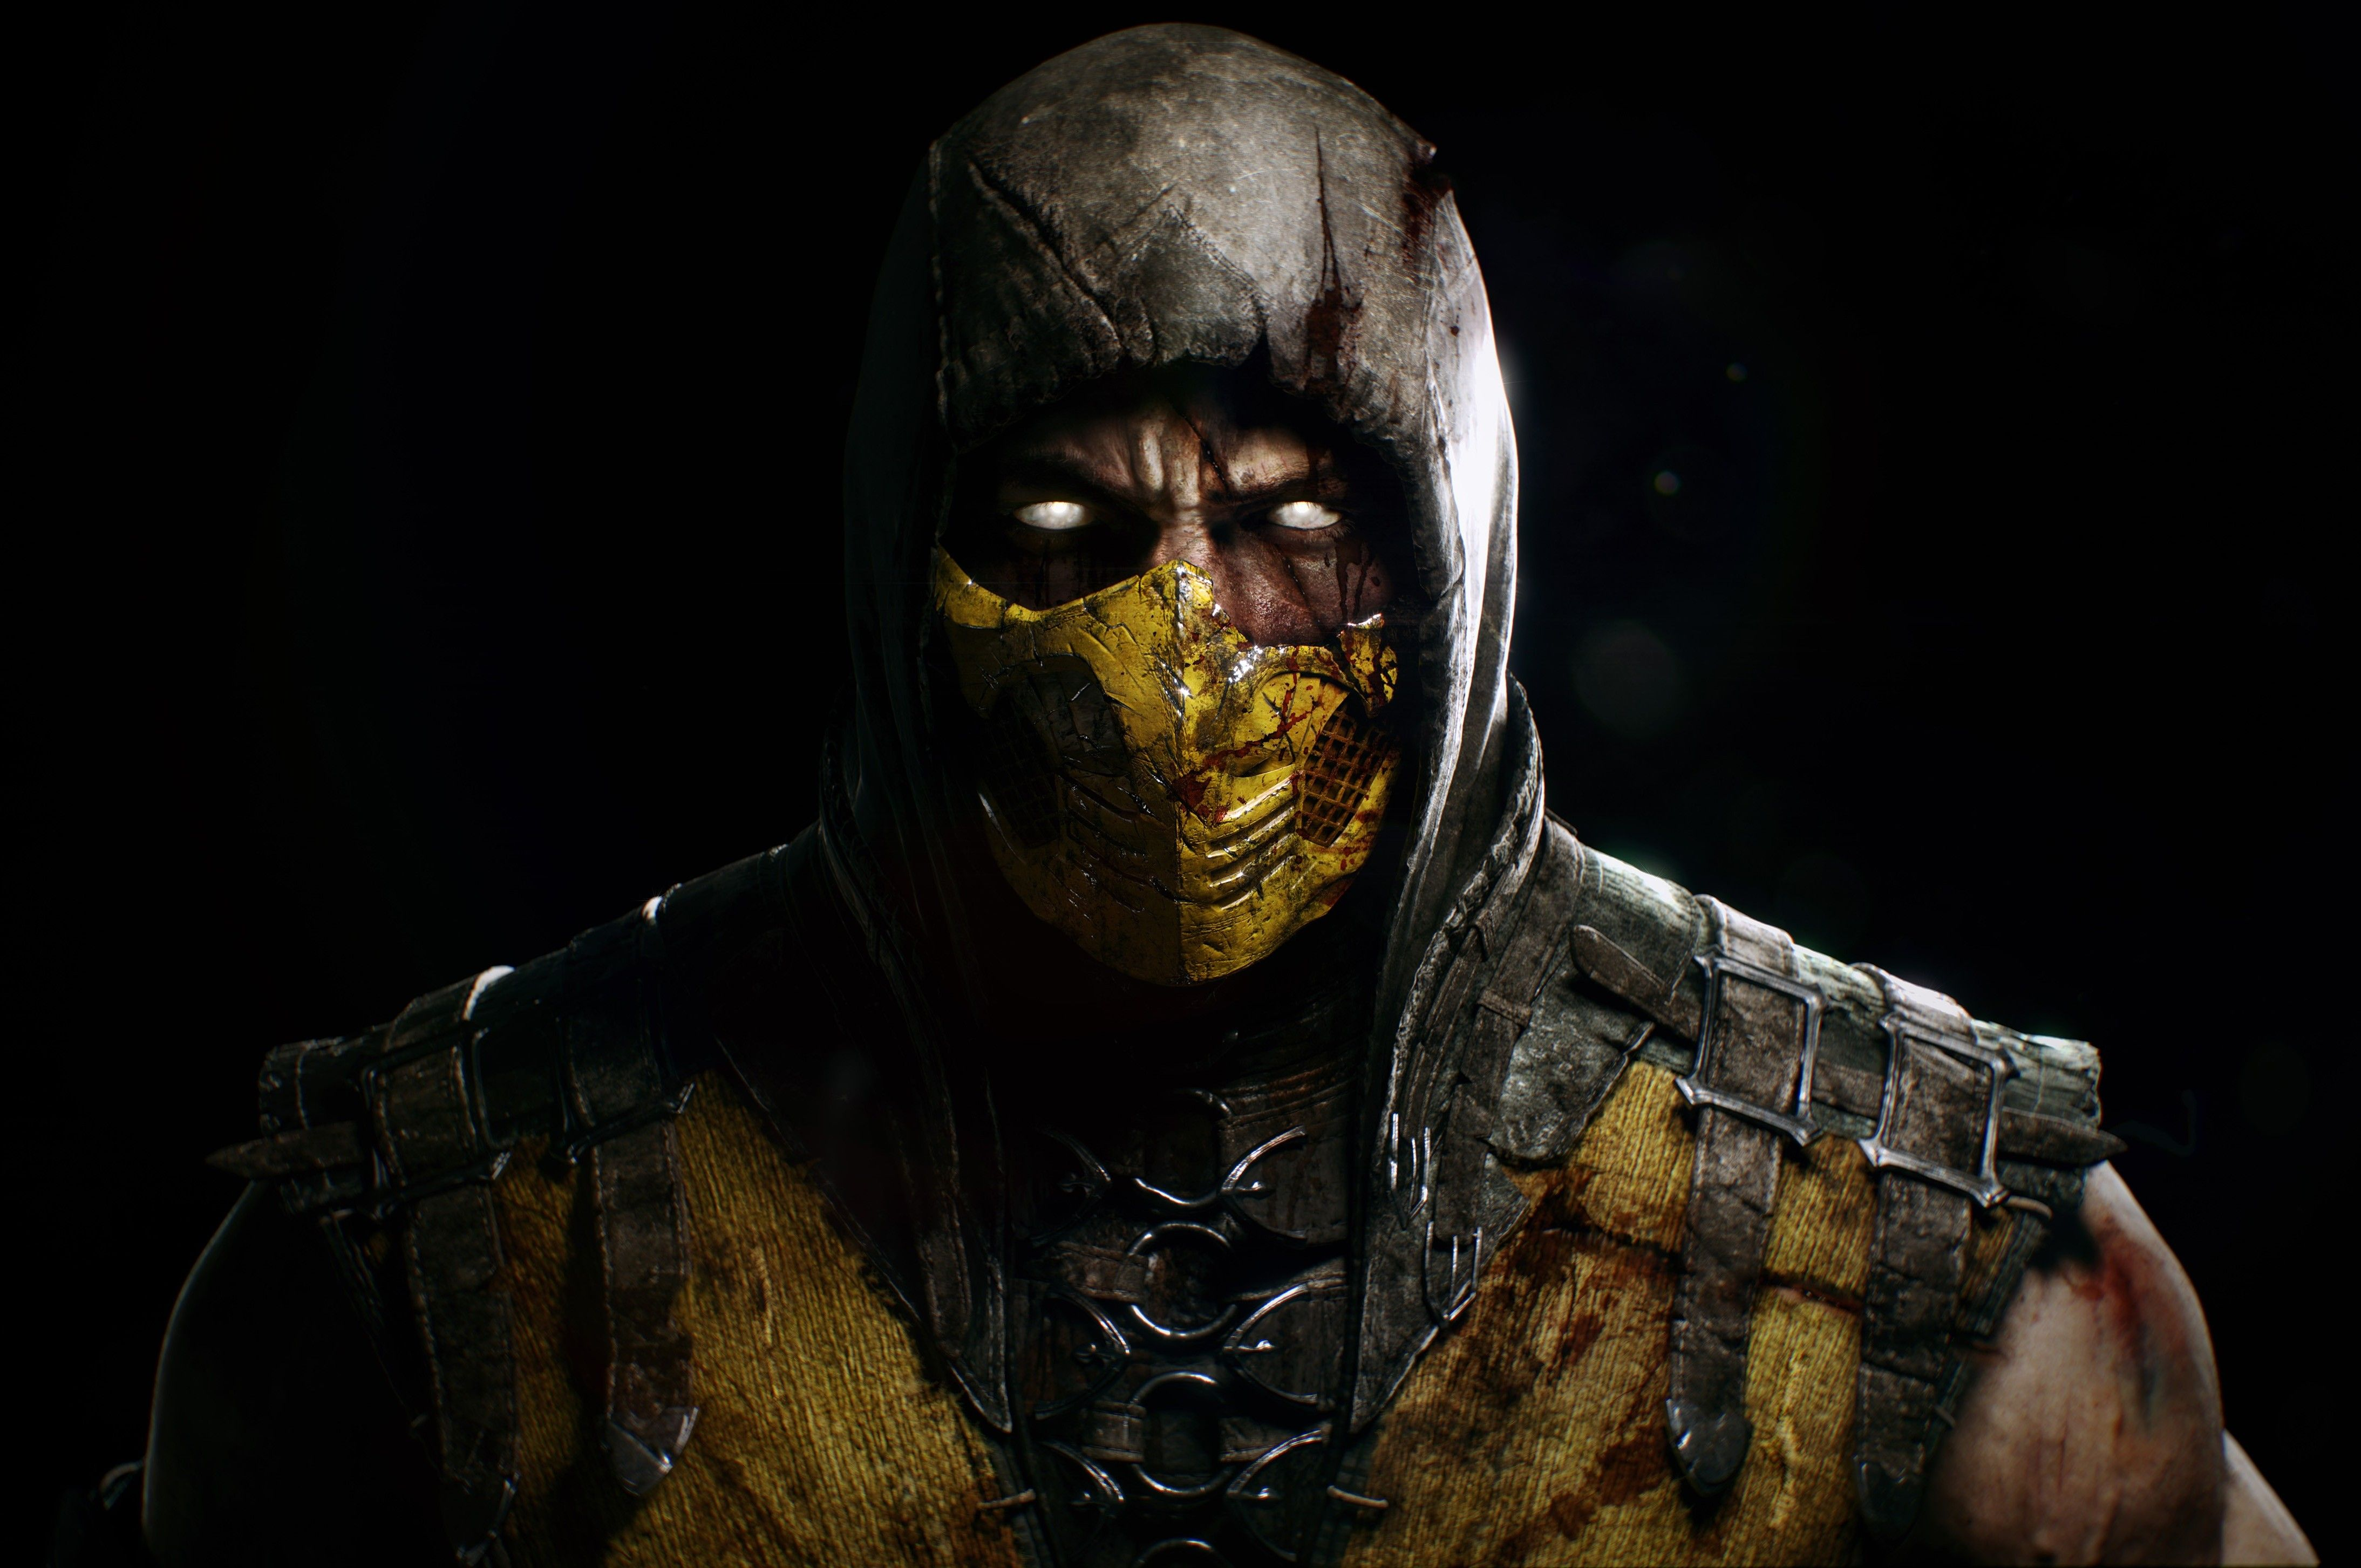 Mortal Kombat X Subzero Vs Scorpion Hd Desktop Wallpaper High Cool